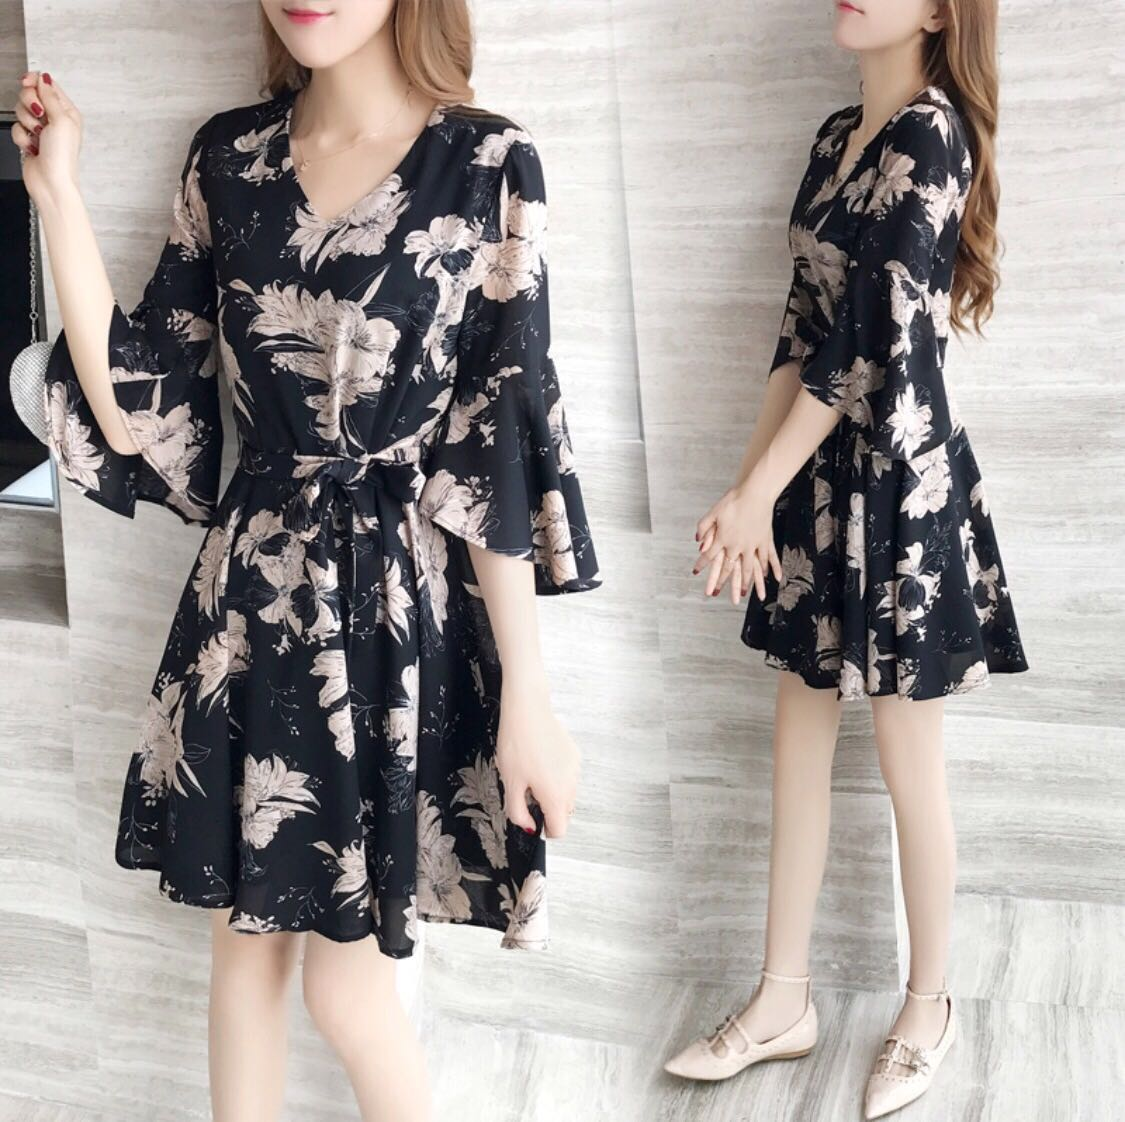 Korean Floral Dress With Butterfly Sleeves Price Reduced Women S